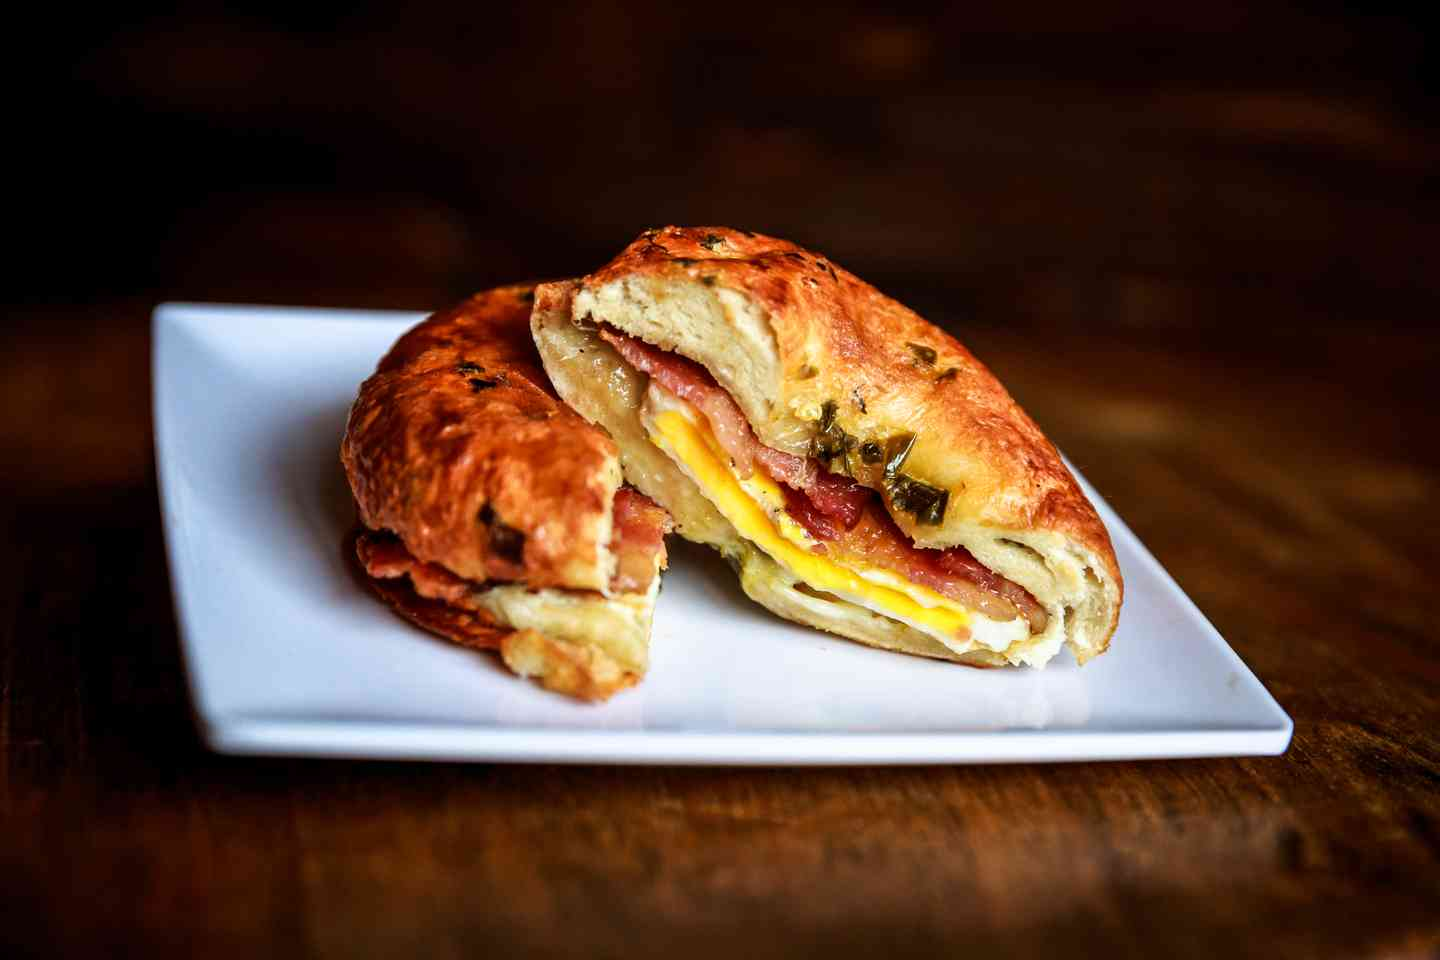 Bacon, Ham or Sausage and Egg & Cheese on a Bagel